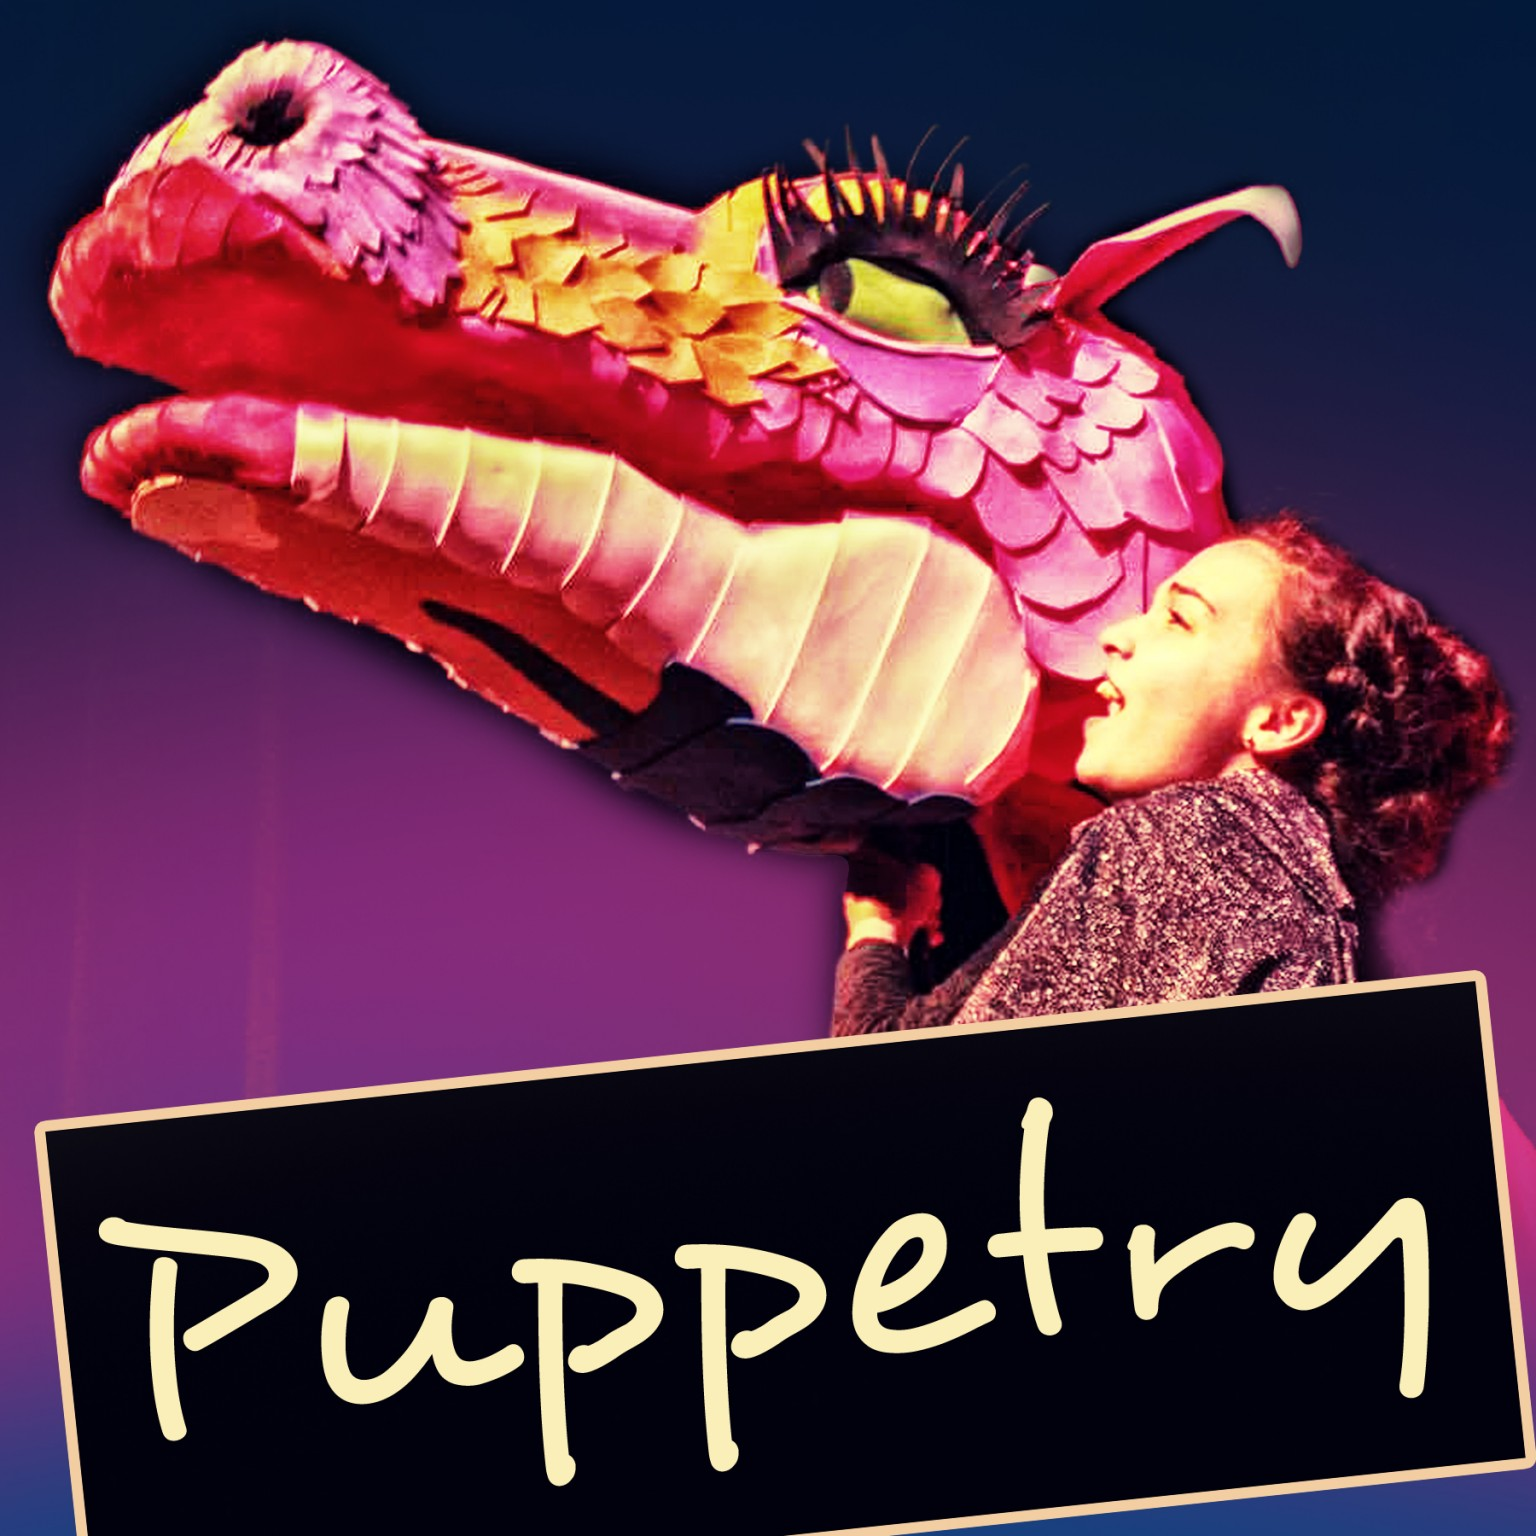 3 Puppetry